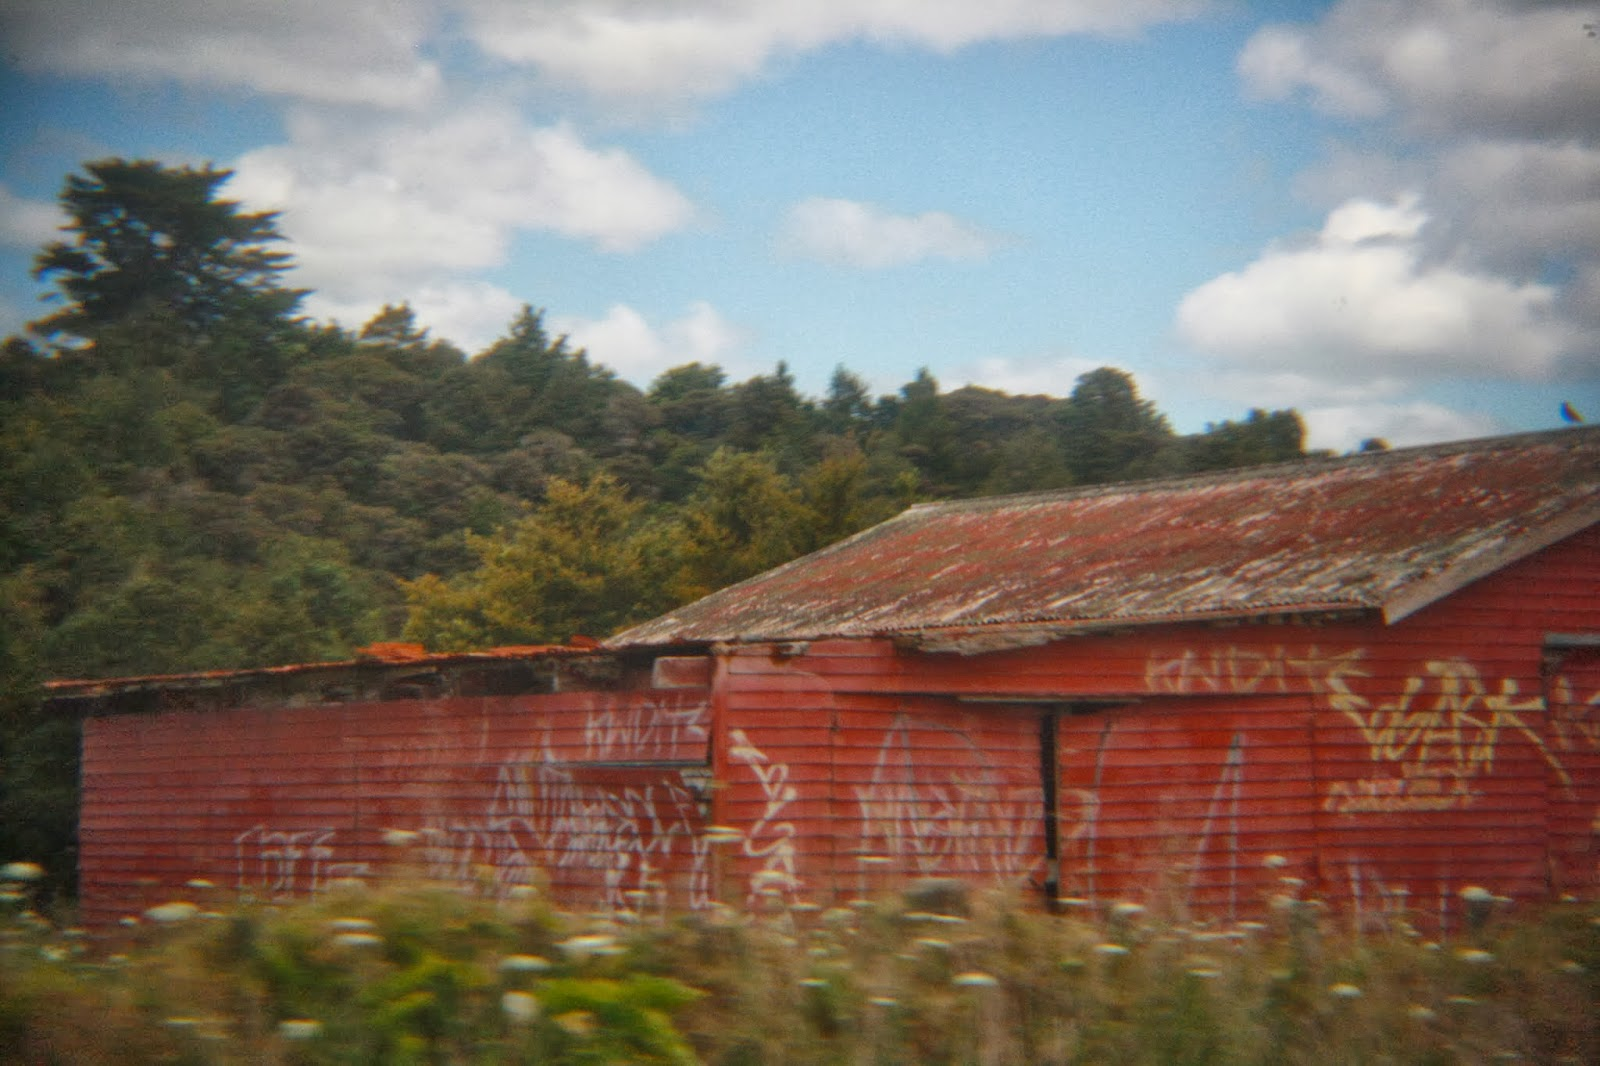 Abandoned red barn in Northland, New Zealand.